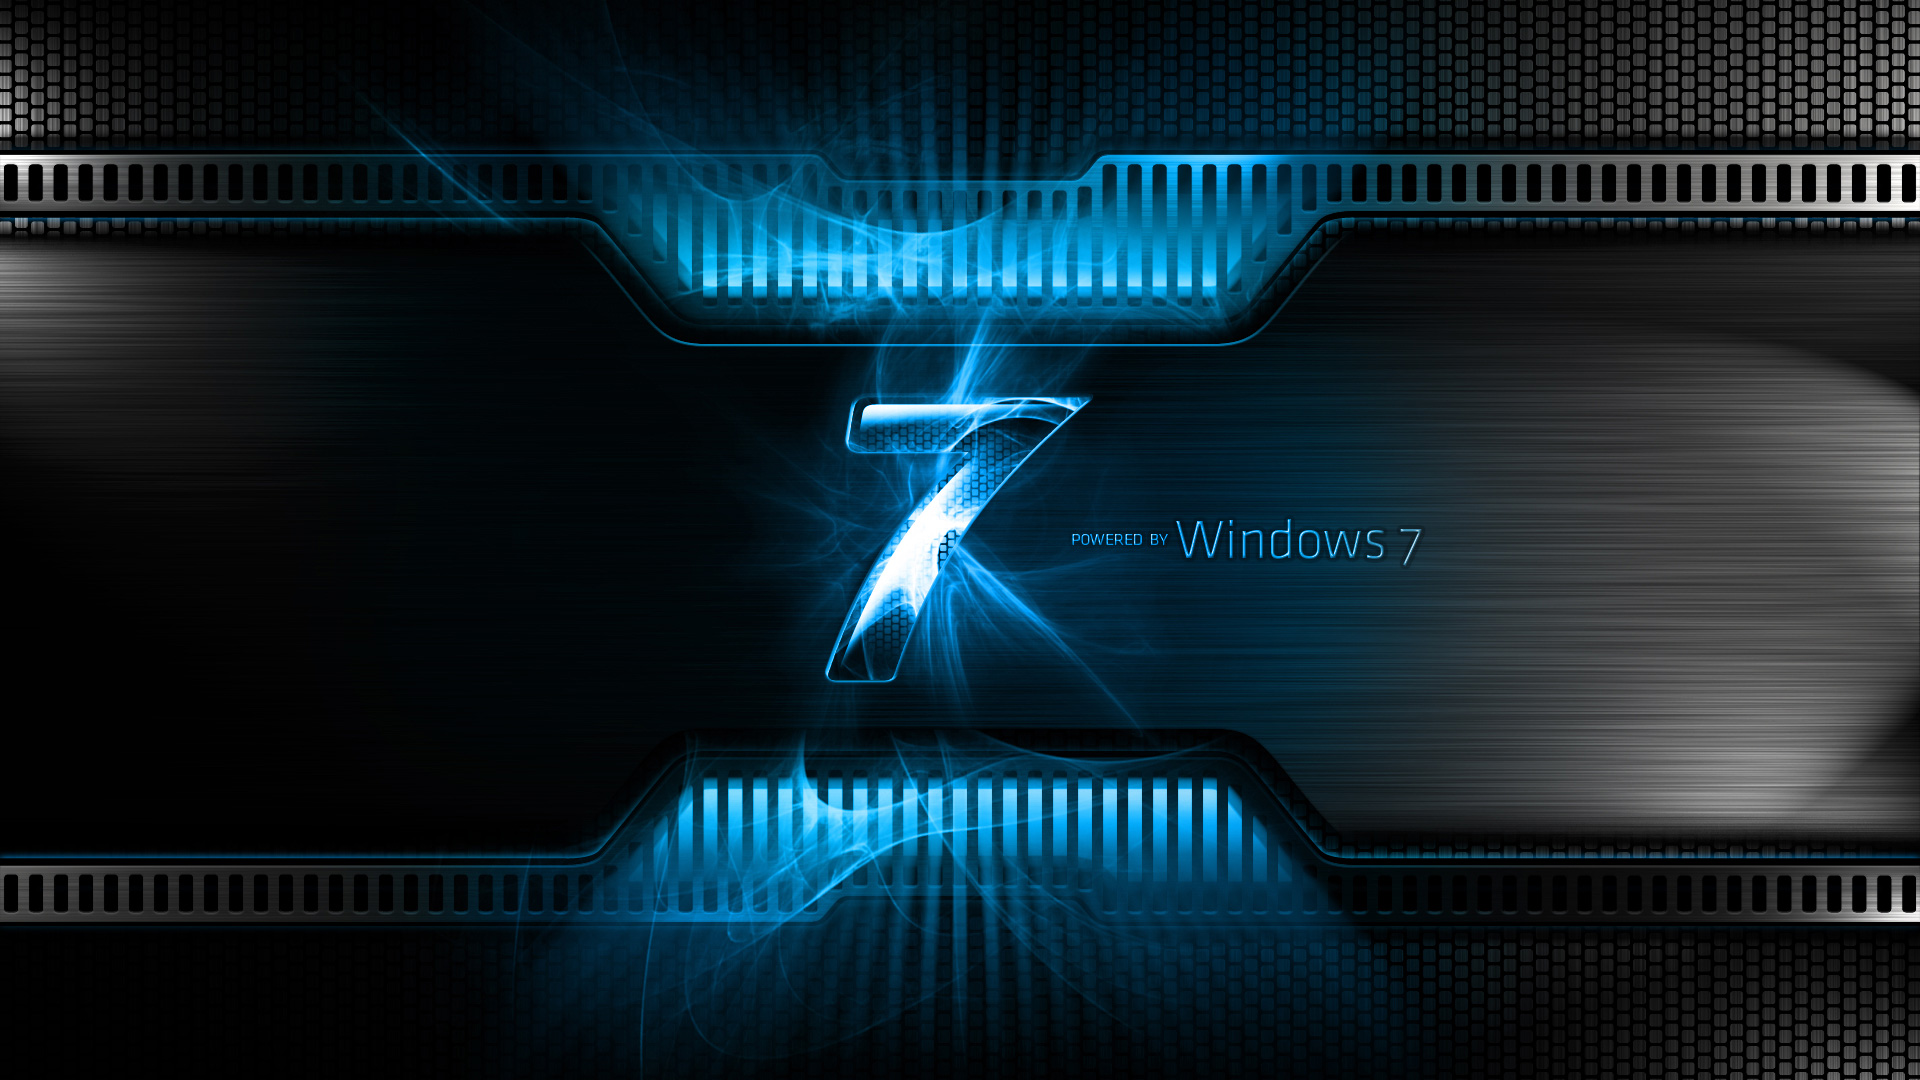 HD Wallpaper For Windows 7 Desktop